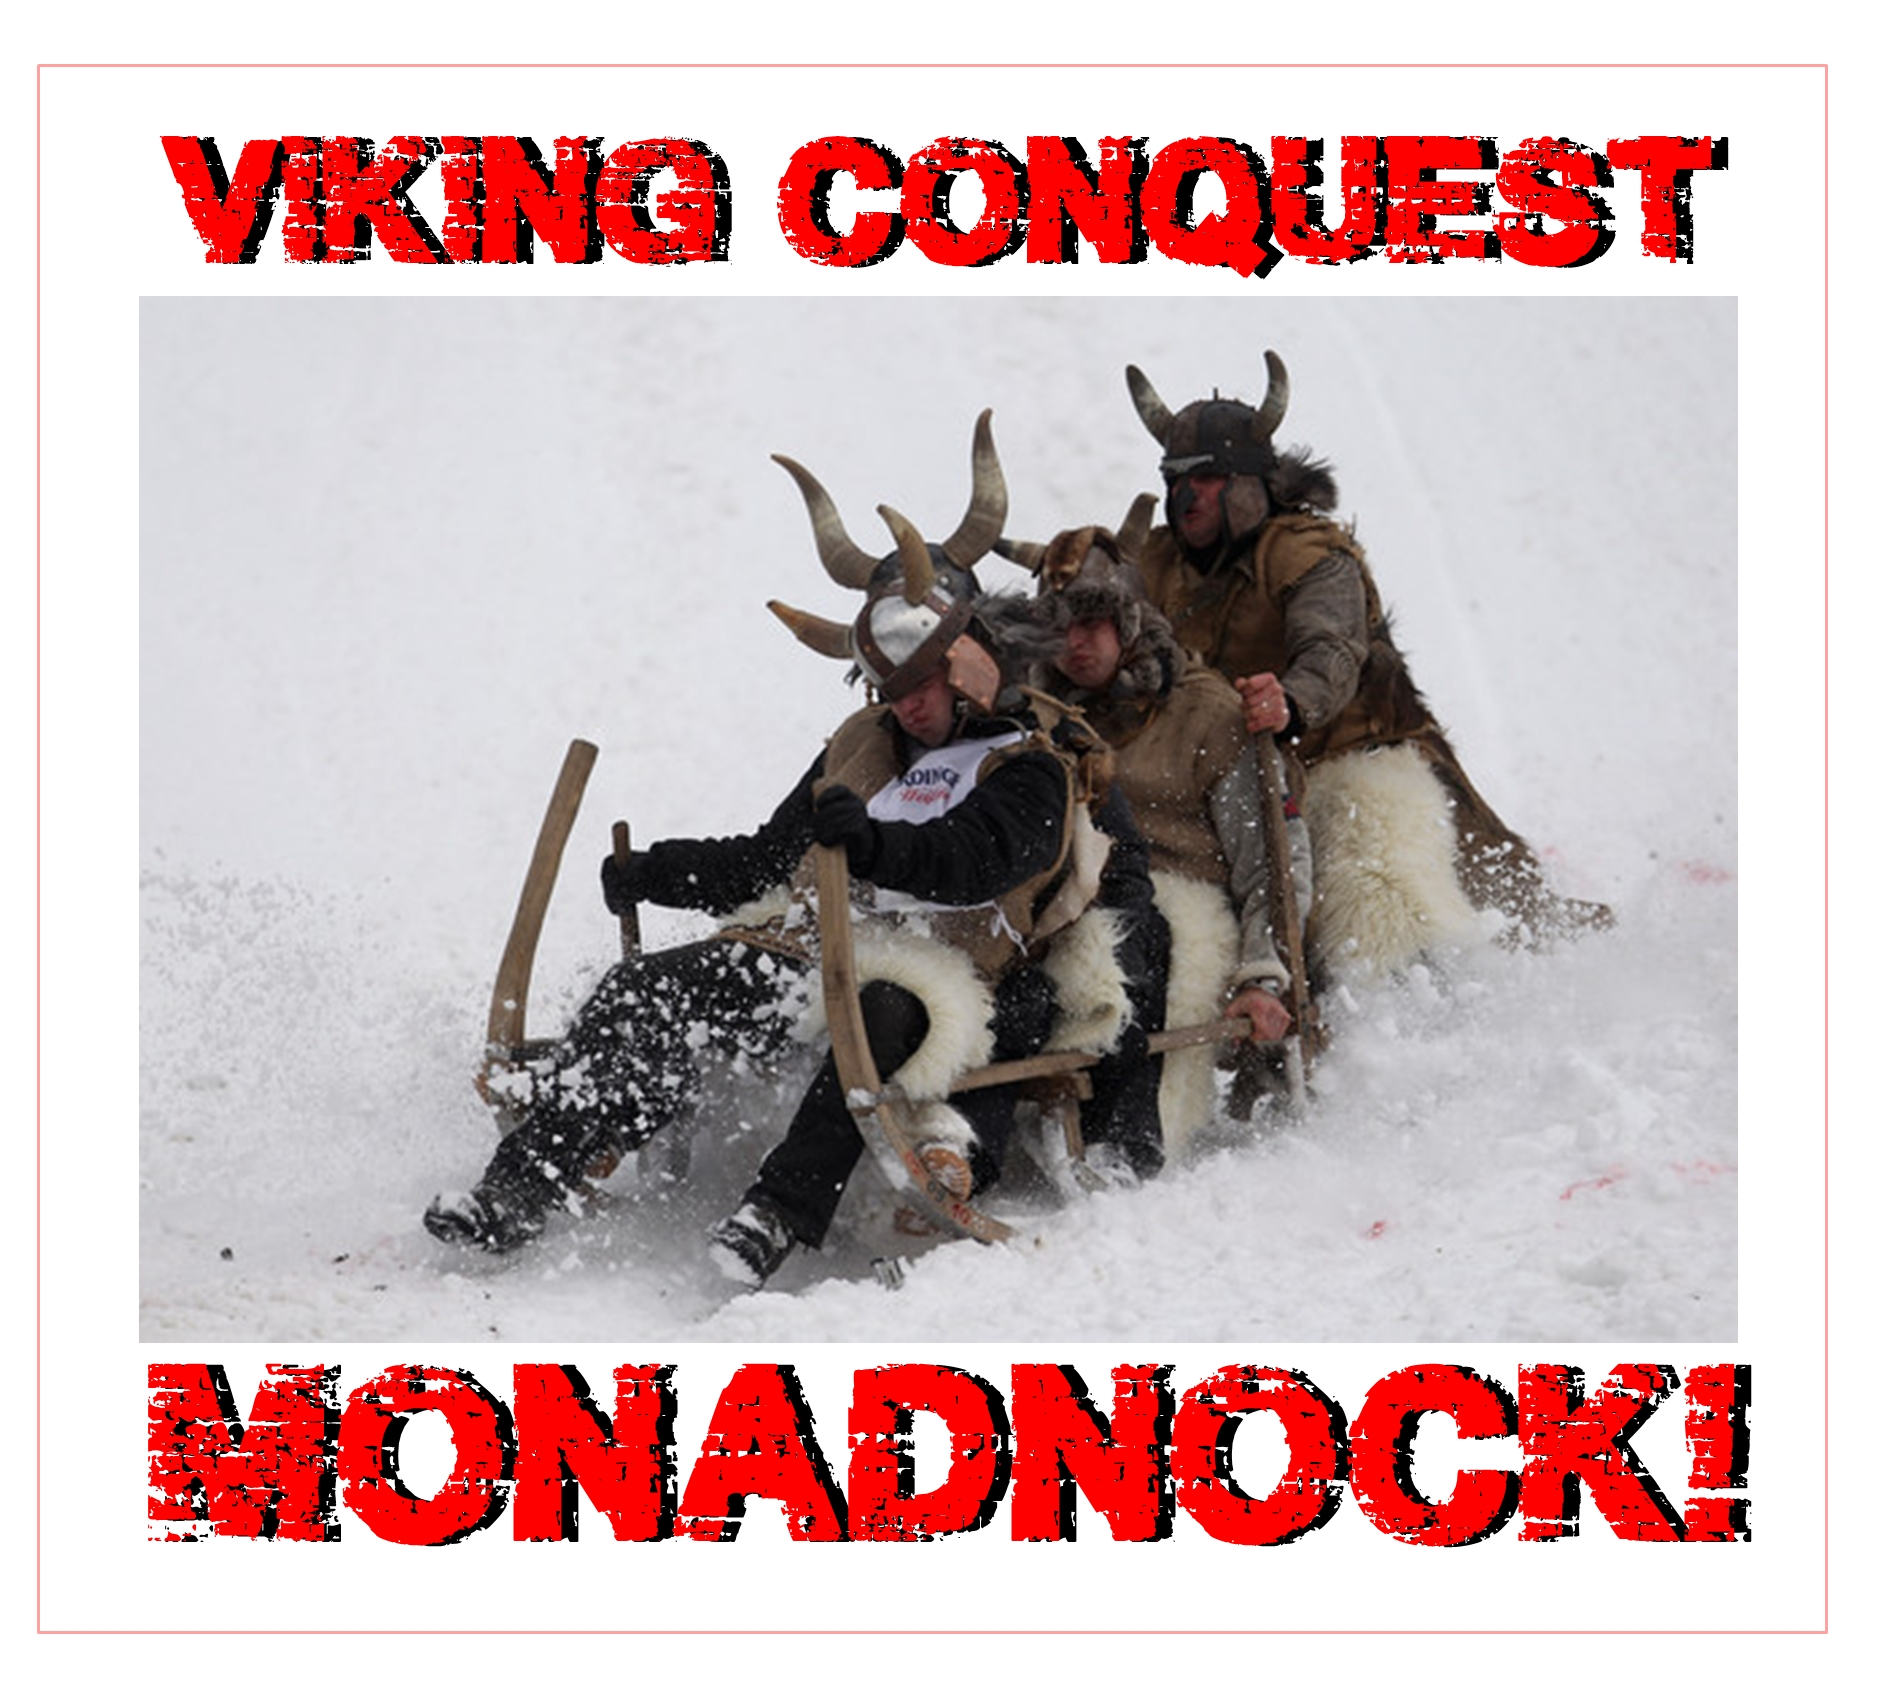 Viking Conquest Monadnock